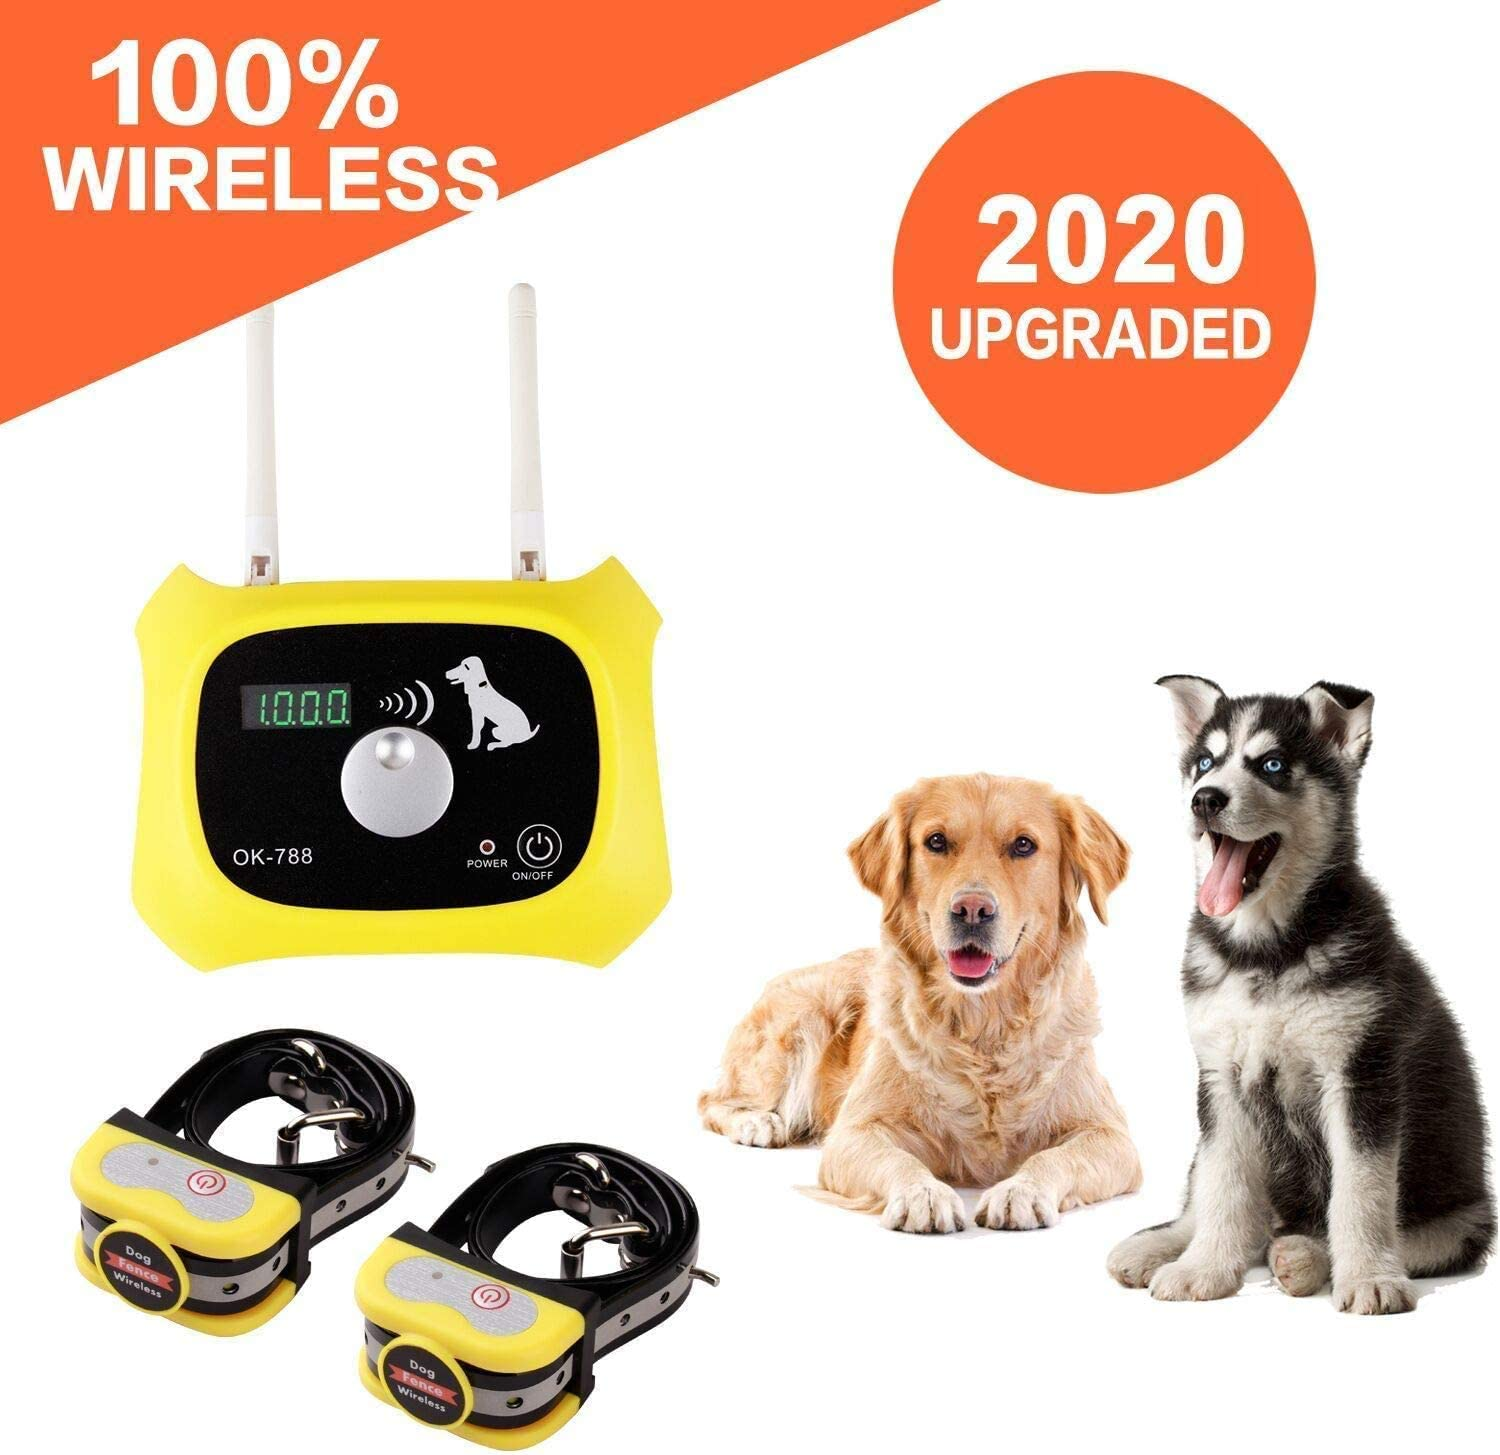 OKPET Wireless Dog Fence Pet Containment System, Wireless Fence Boundary Container, Waterproof Dog Collar Receiver, Adjustable 1000 Feet Range, Harmless for All Dogs